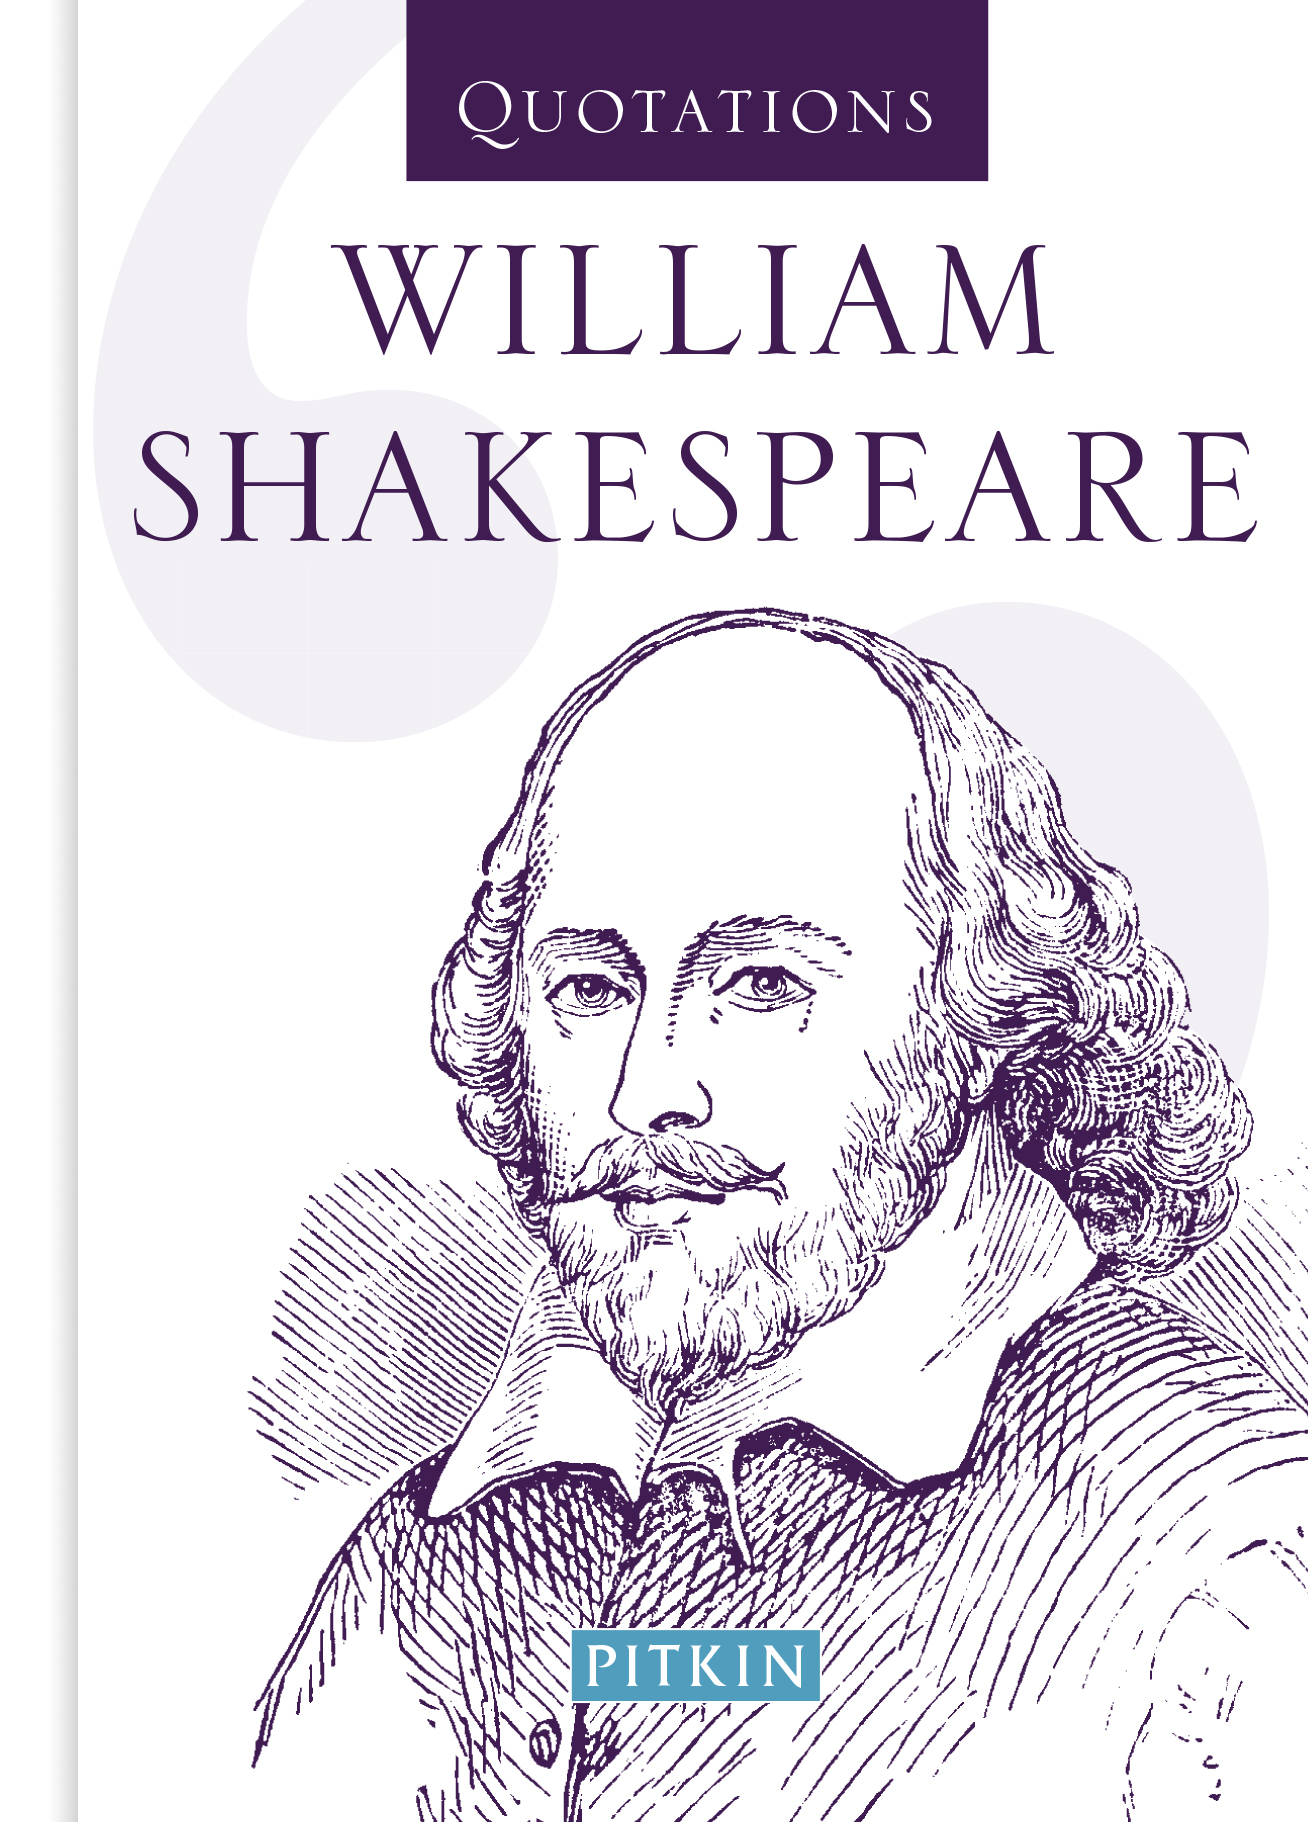 William Shakespeare Quotations